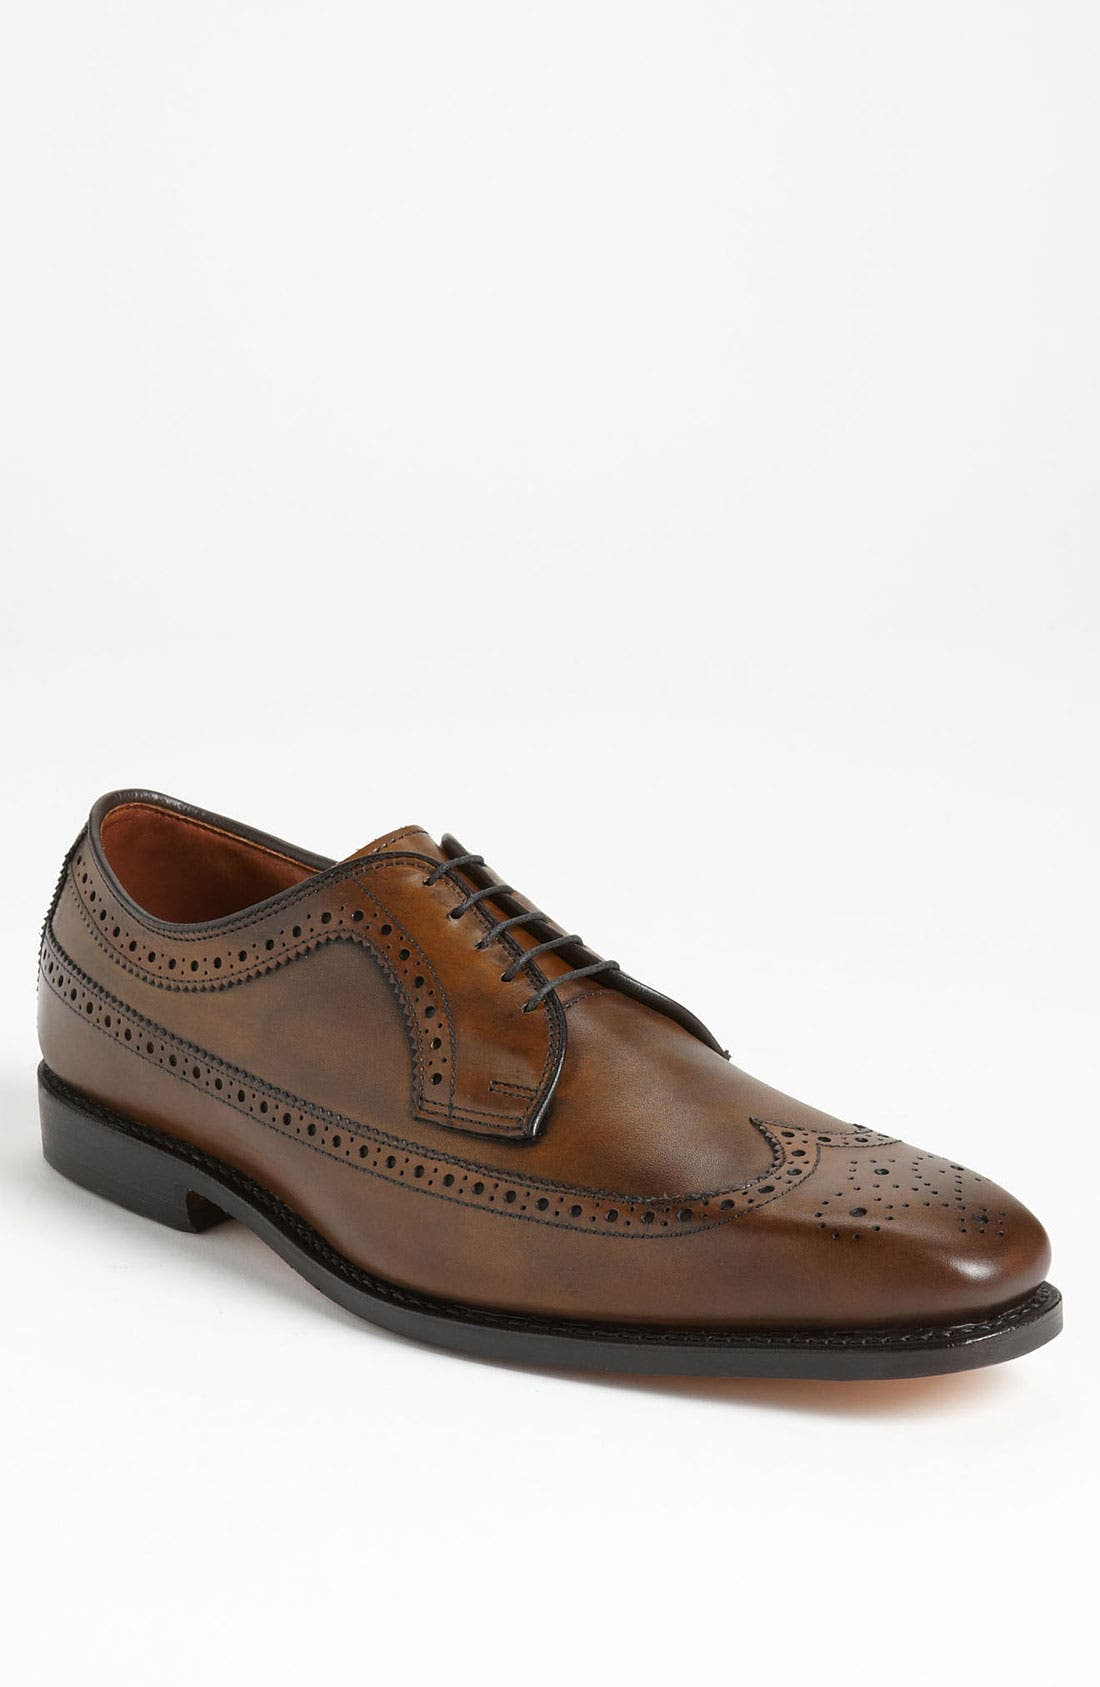 Alternate Image 1 Selected - Allen Edmonds 'Larchmont' Longwing Derby (Online Only) (Men)